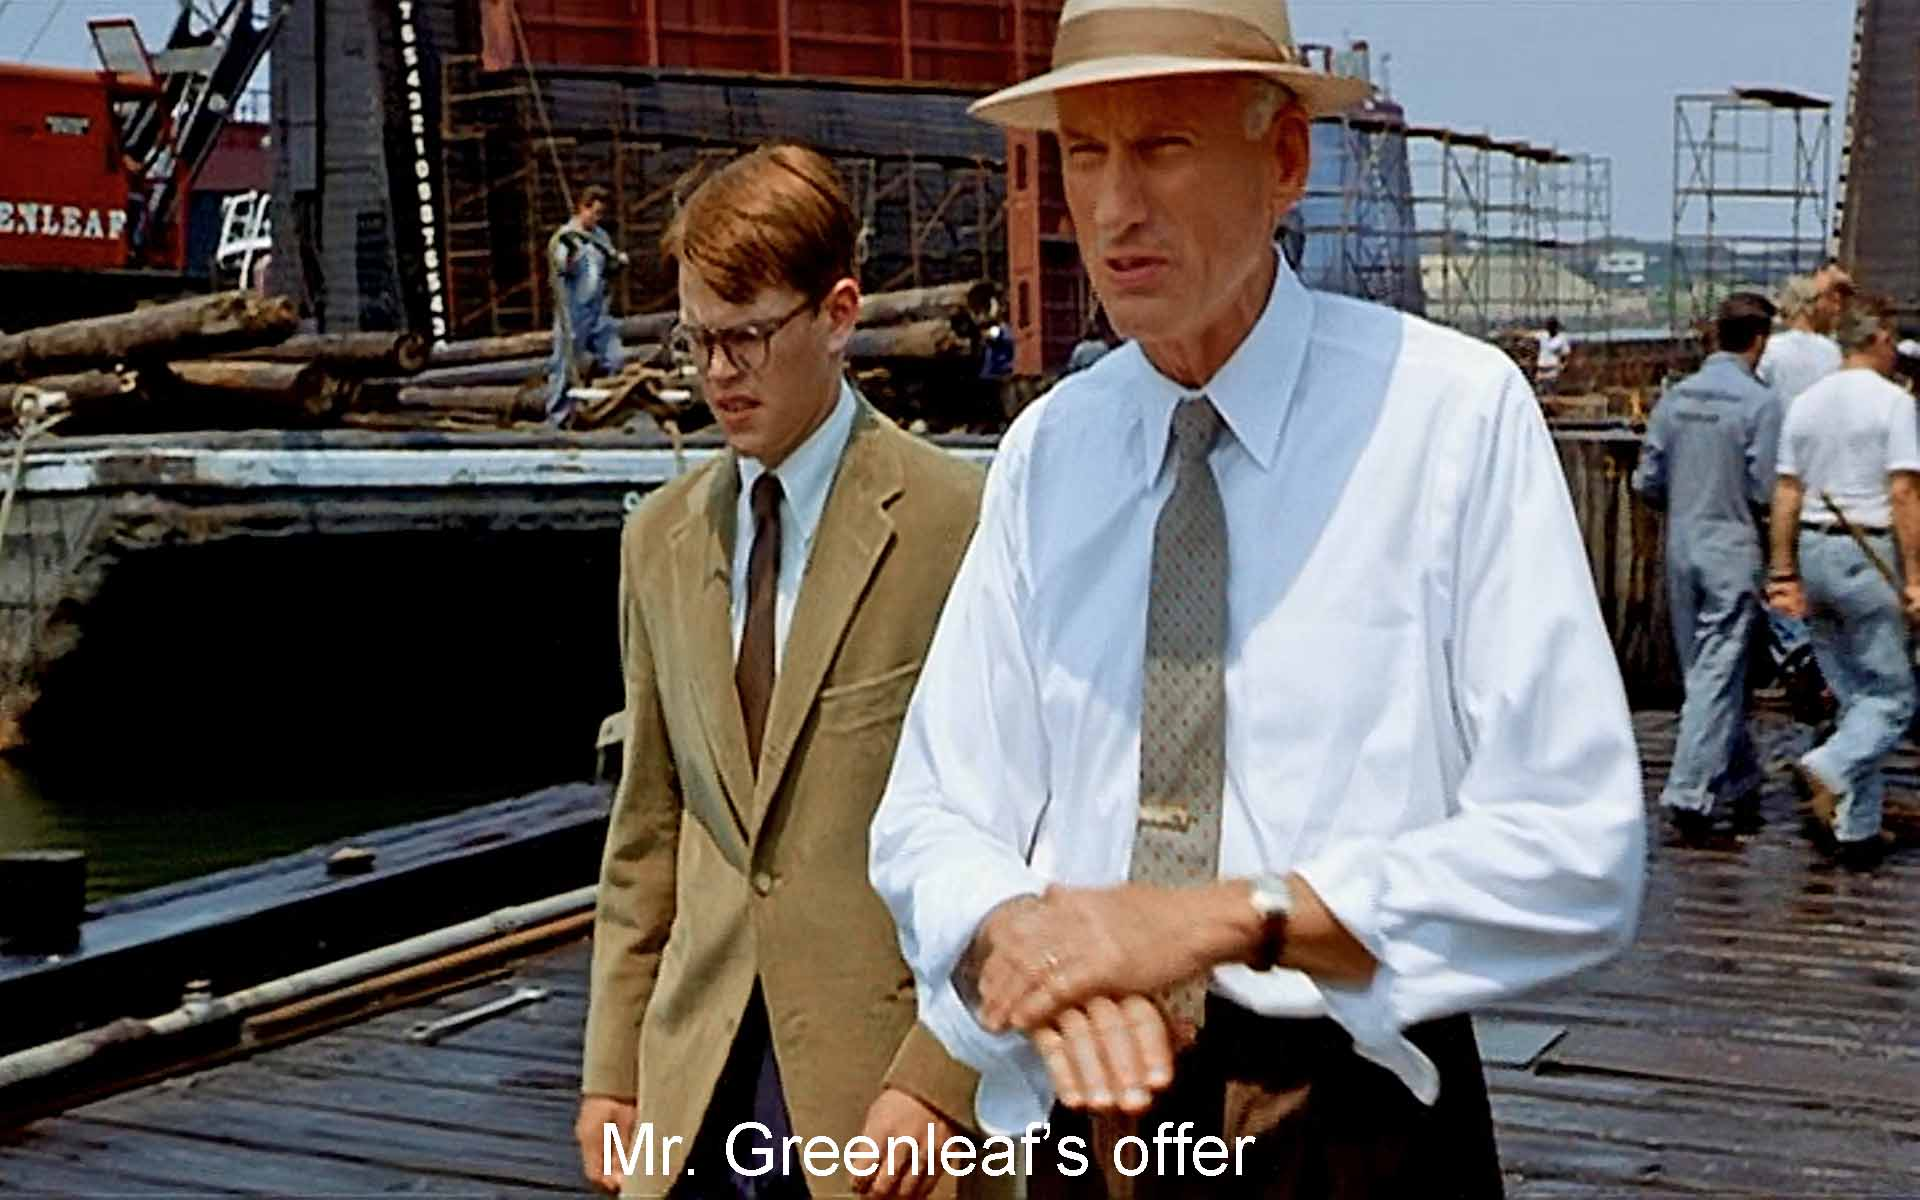 Mr. Greenleaf's offer